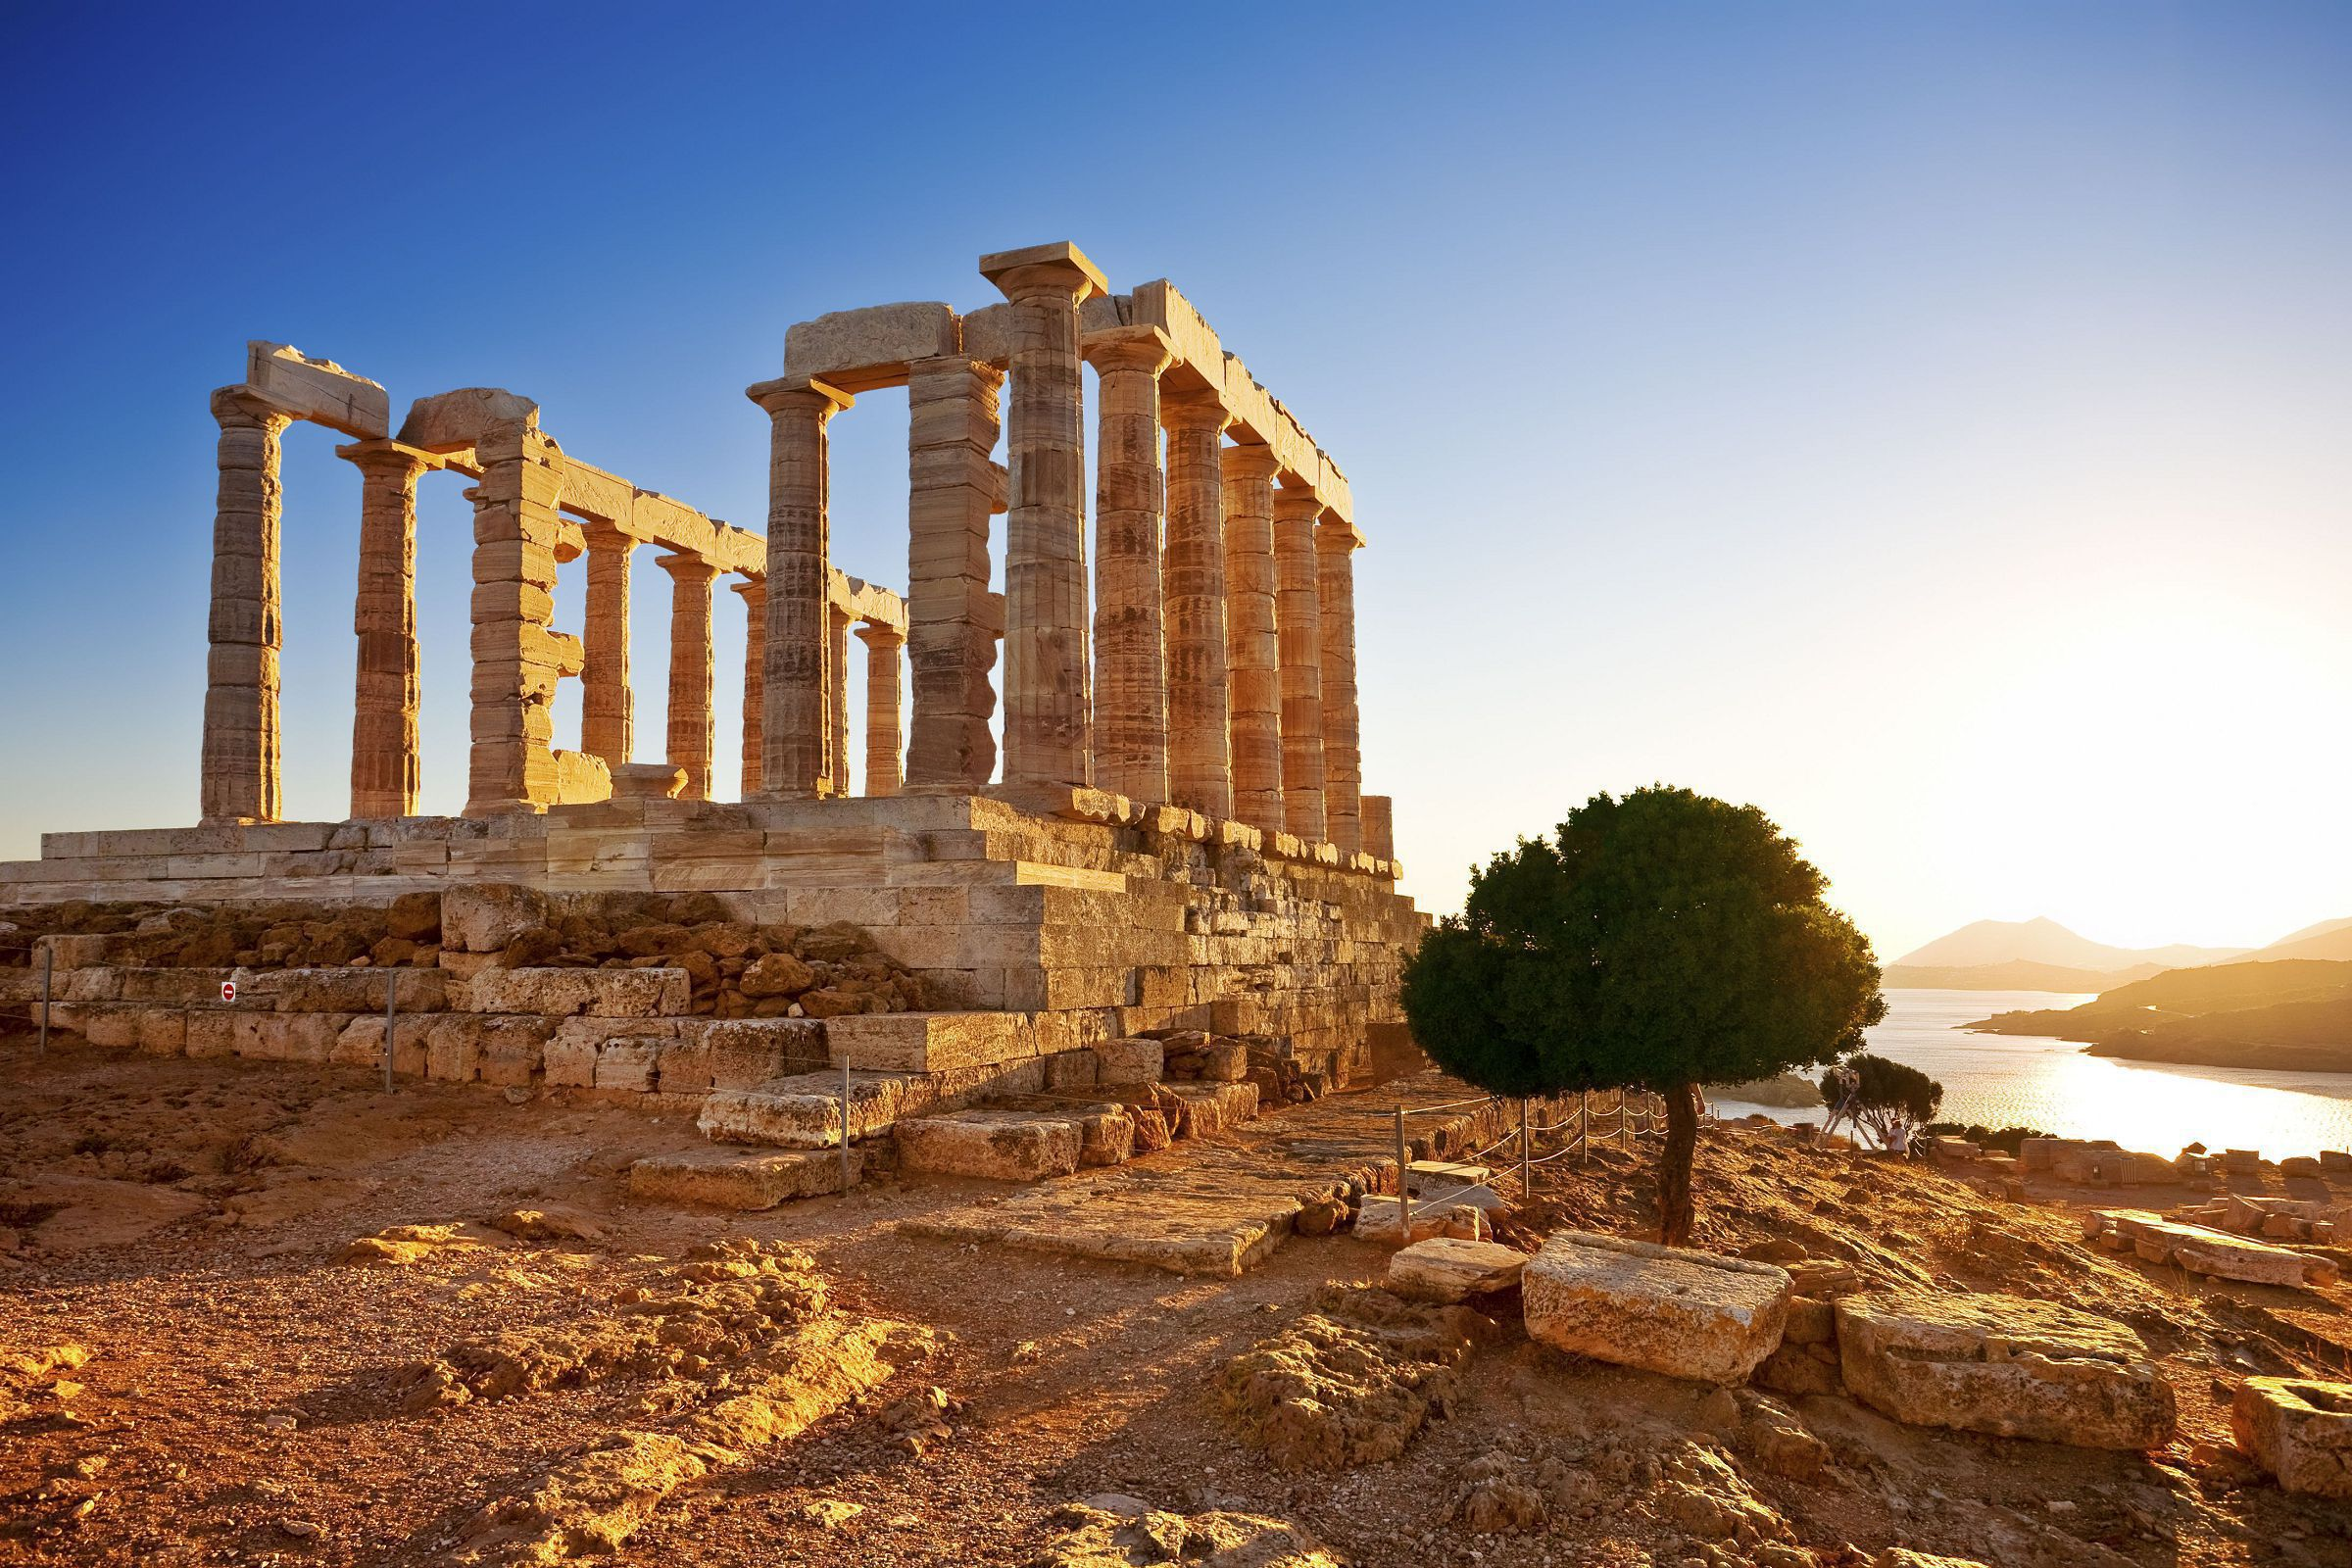 A View Of The Temple Of Poseidon At Cape Sounion, Greece